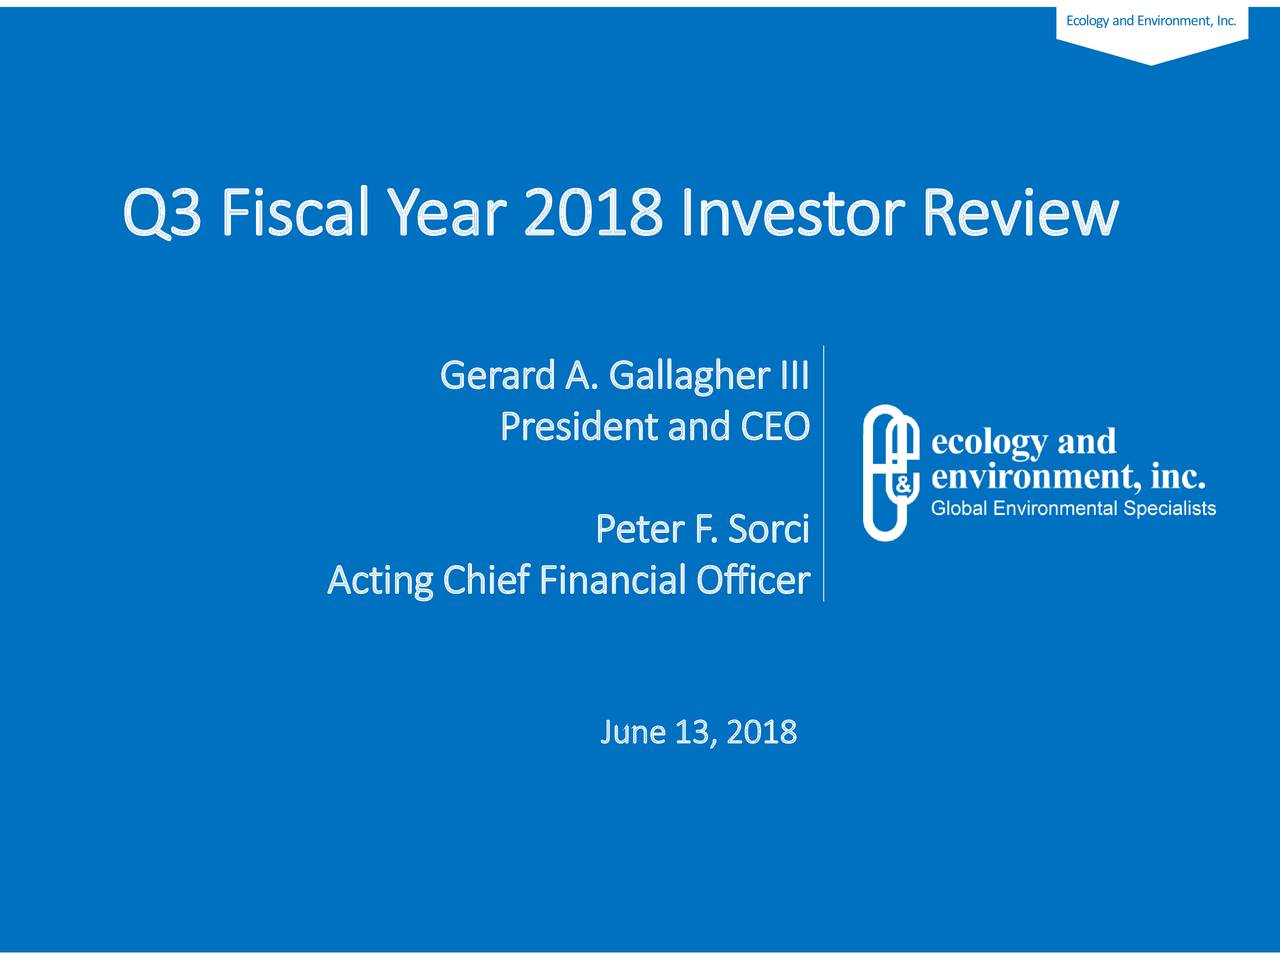 Q3 Fiscal Year 2018InvestorReview Gerard A. Gallagher III President and CEO Peter F. Sorci Acting Chief Financial Officer June 13, 2018